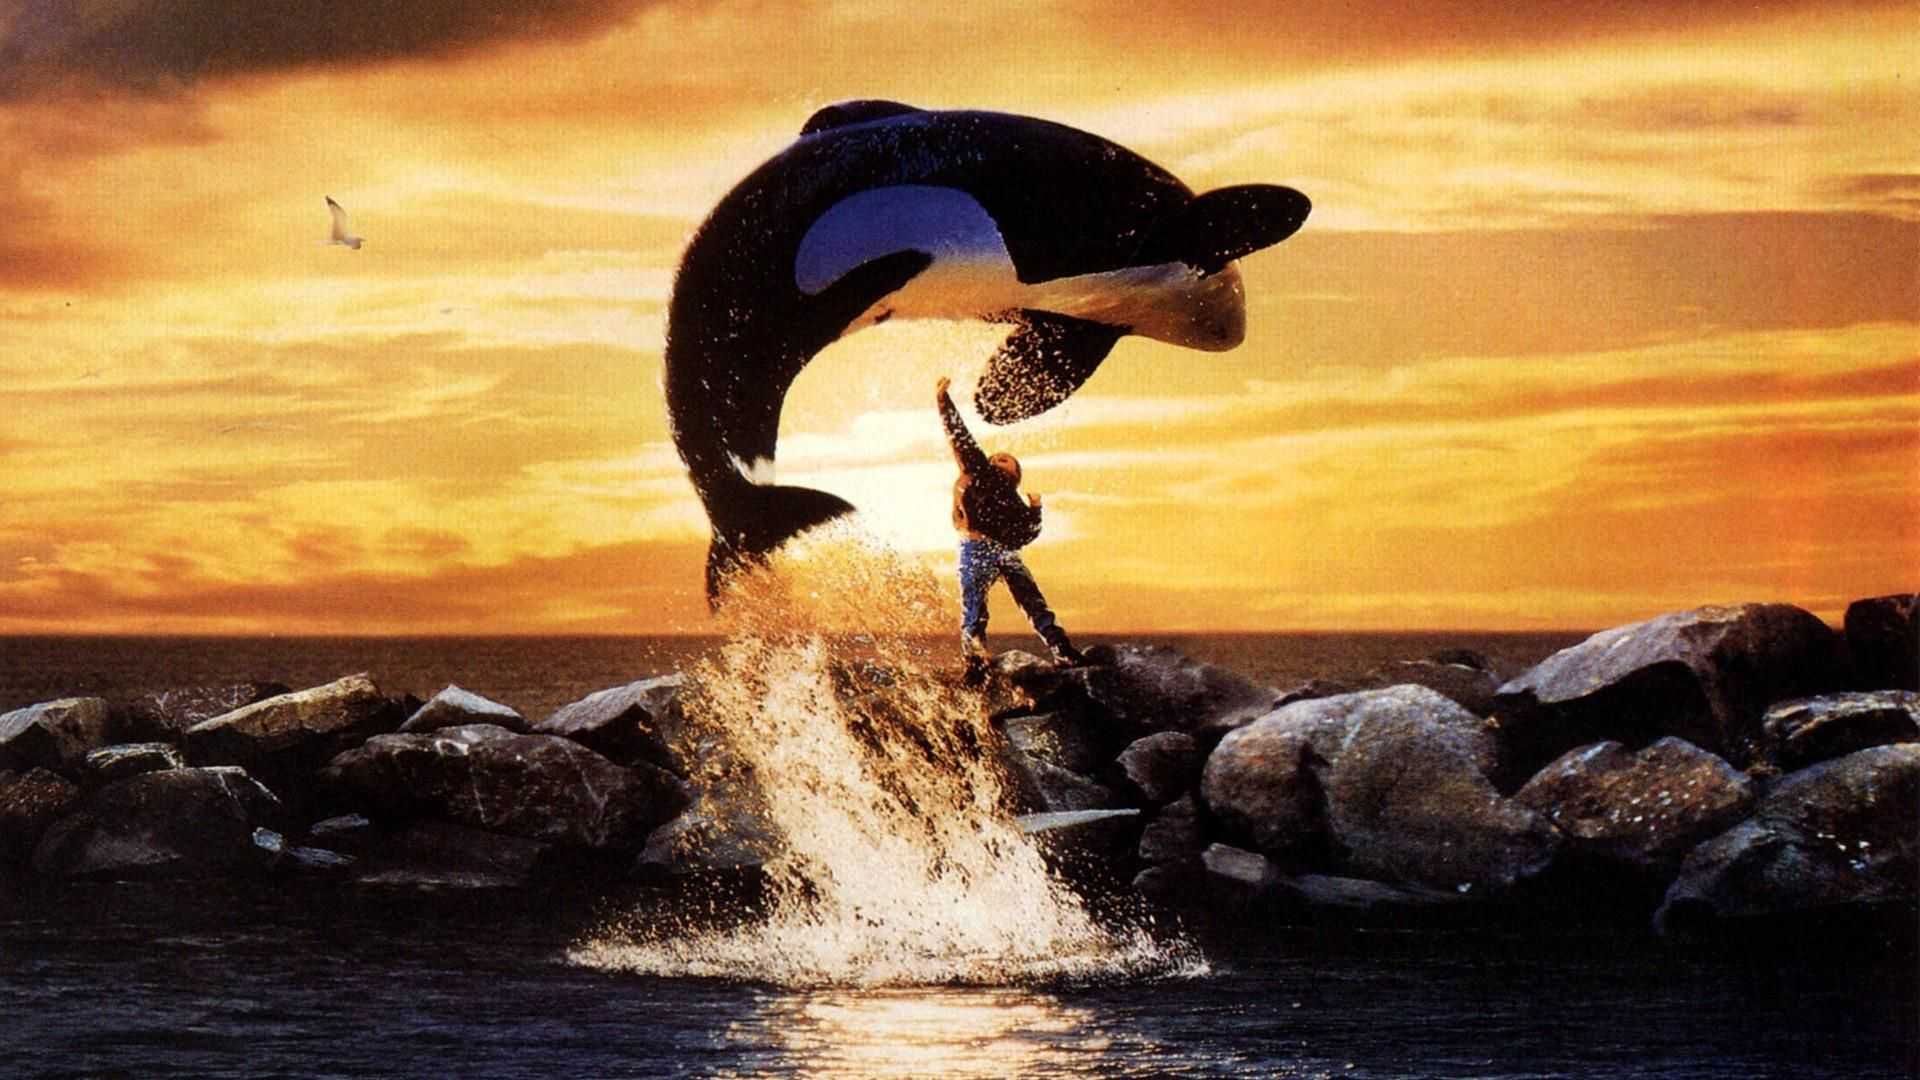 Free Willy Jump Scene